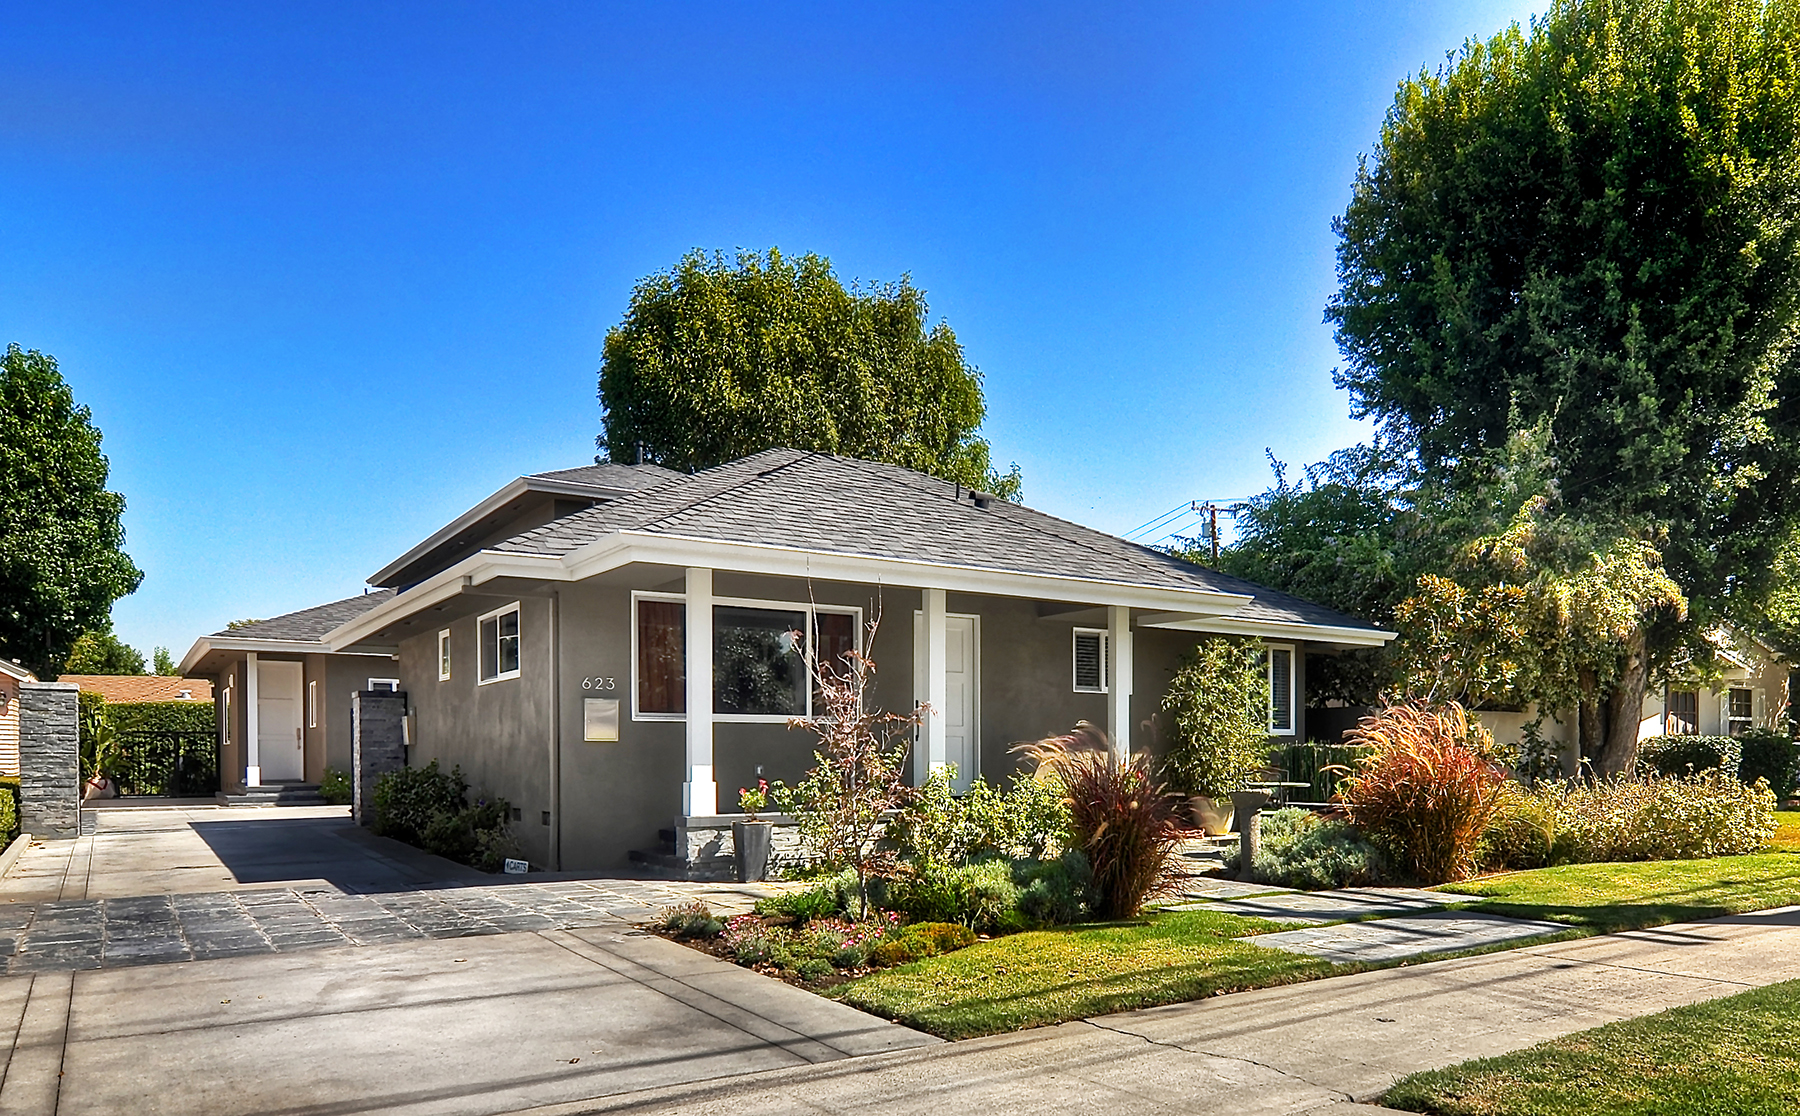 Property For Sale at 623 E. Almond Ave.